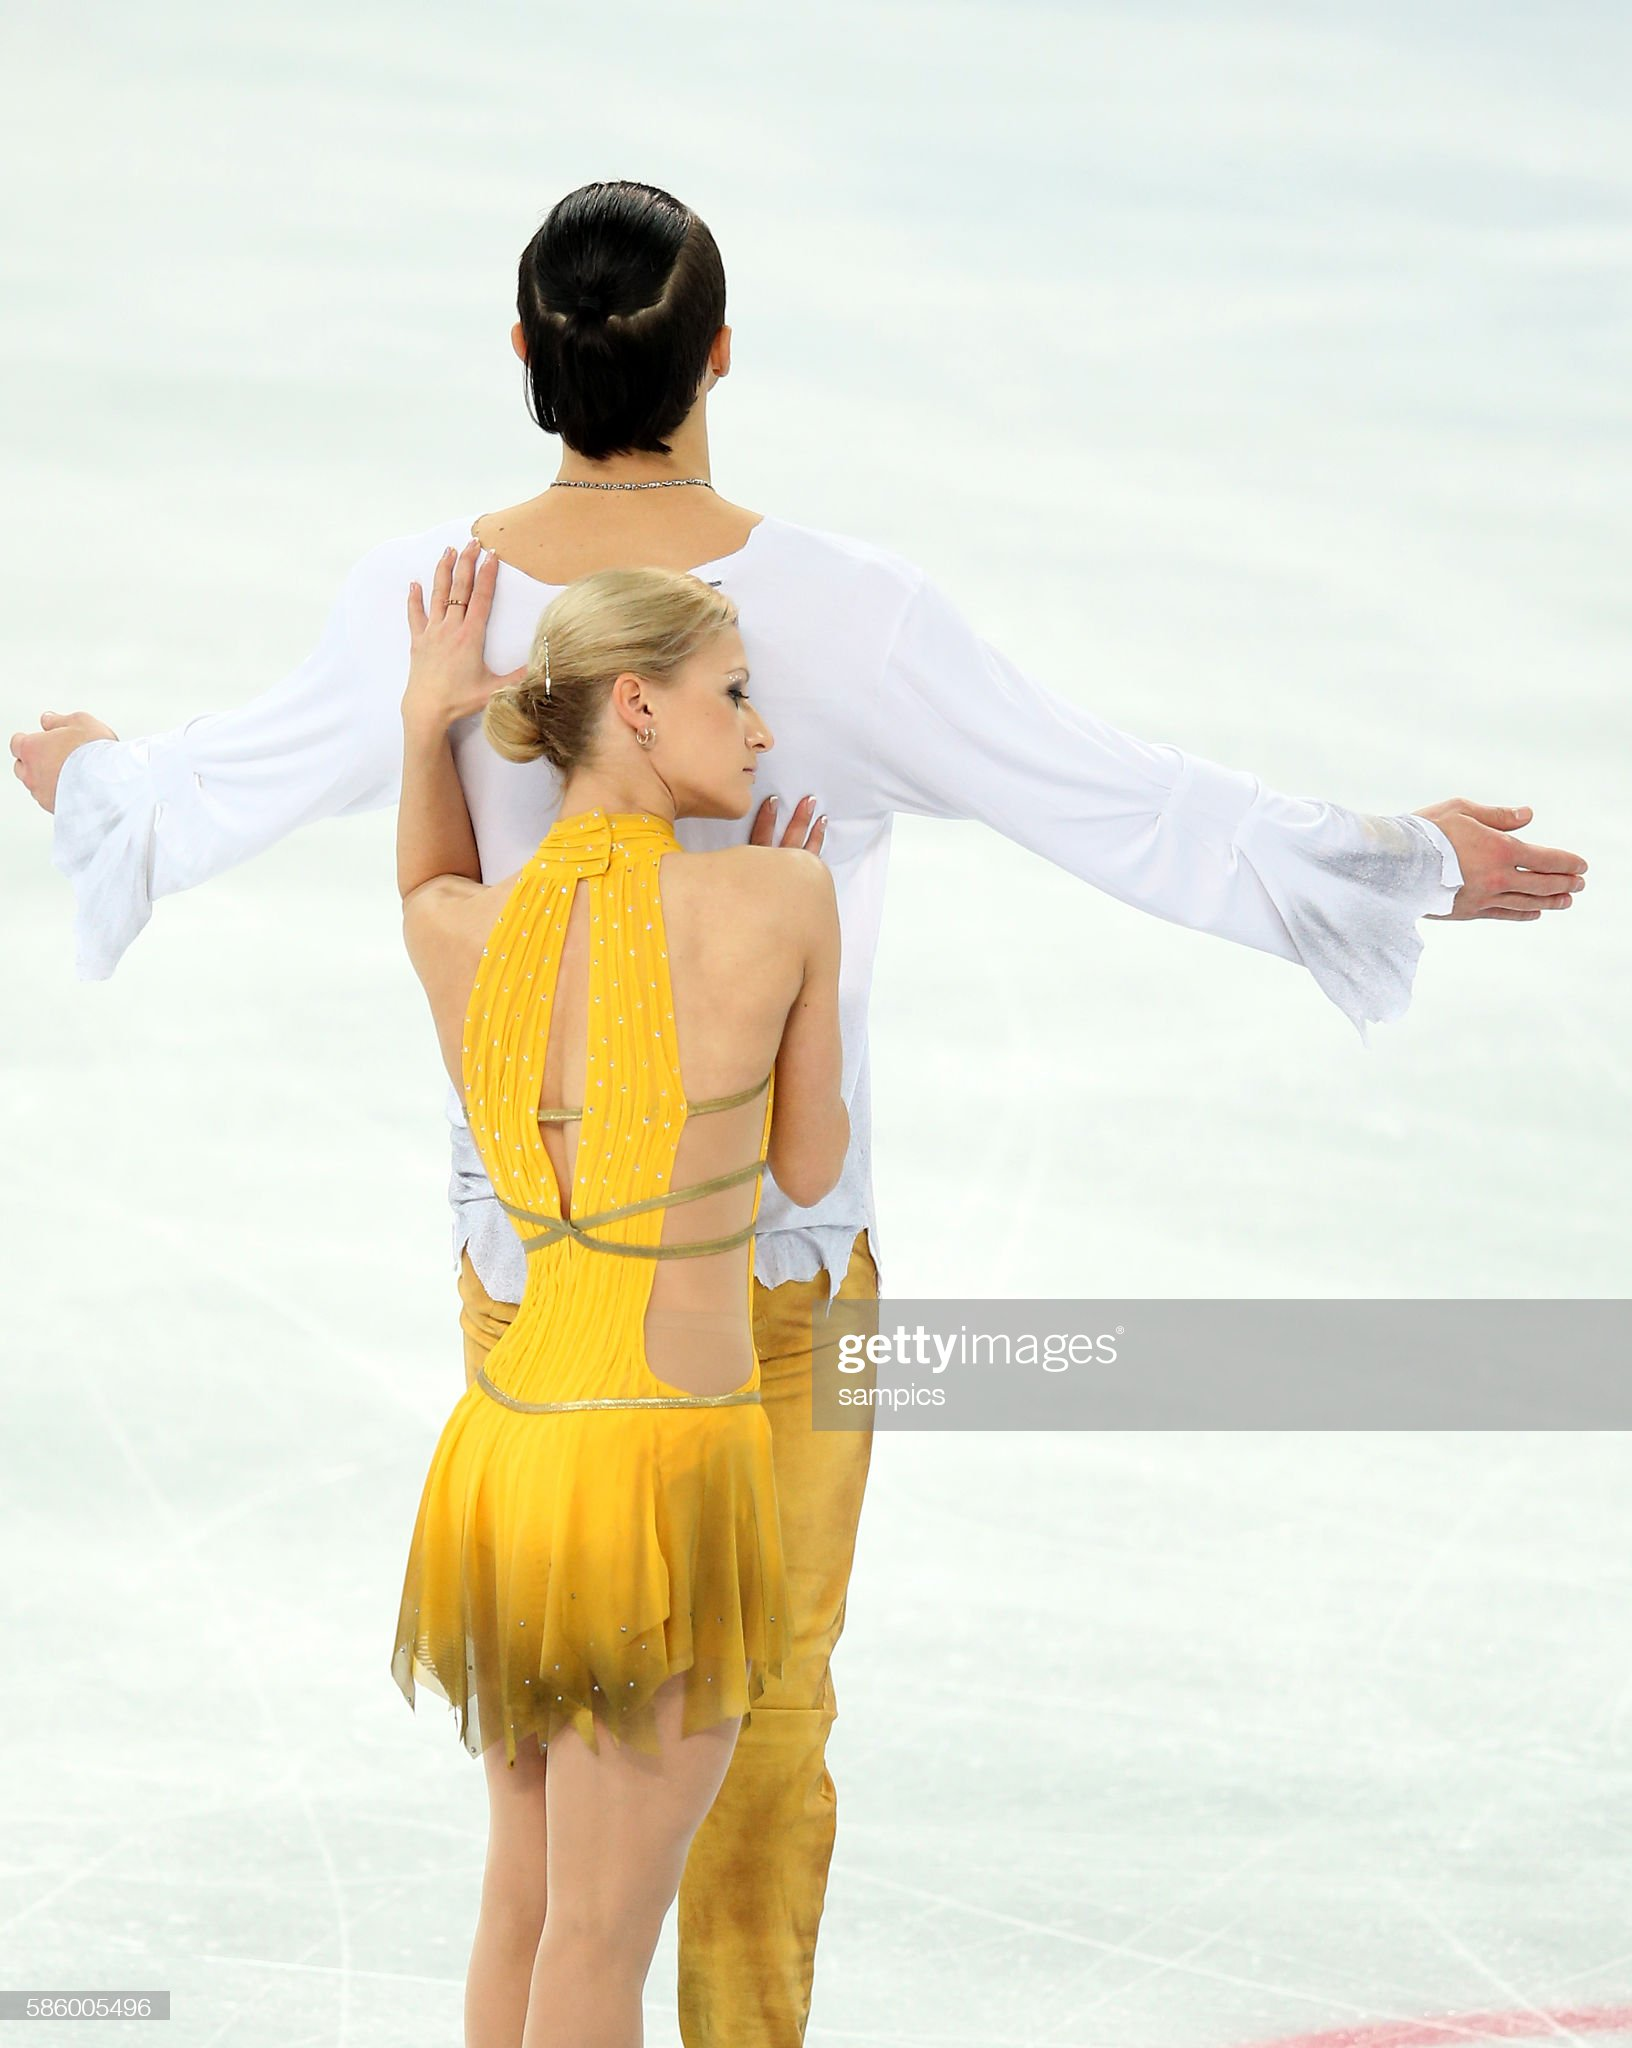 https://media.gettyimages.com/photos/olympic-champion-tatiana-volosozhar-maxim-trankov-figure-skating-picture-id586005496?s=2048x2048